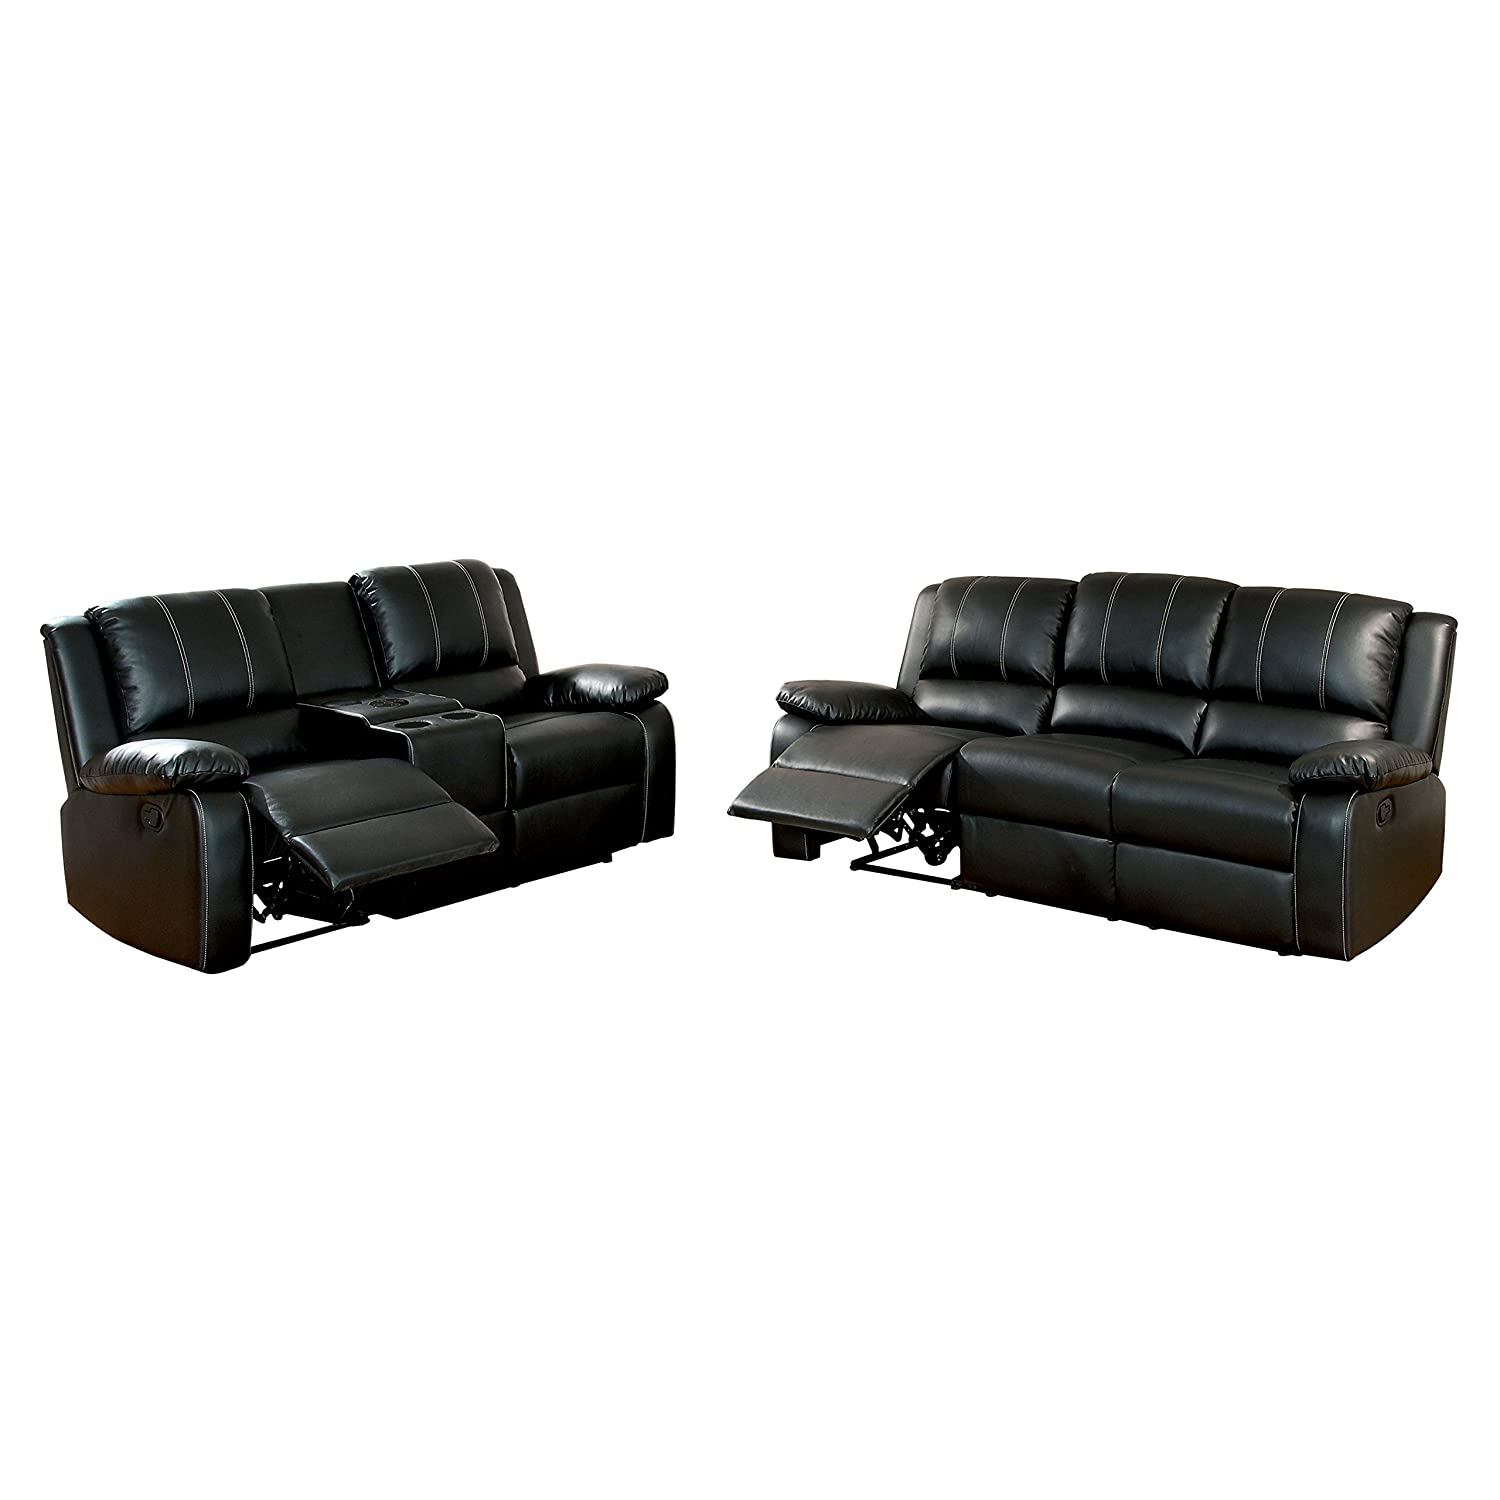 Amazon Com Homes Inside Out Ricco Bonded Leather Match 2 Piece